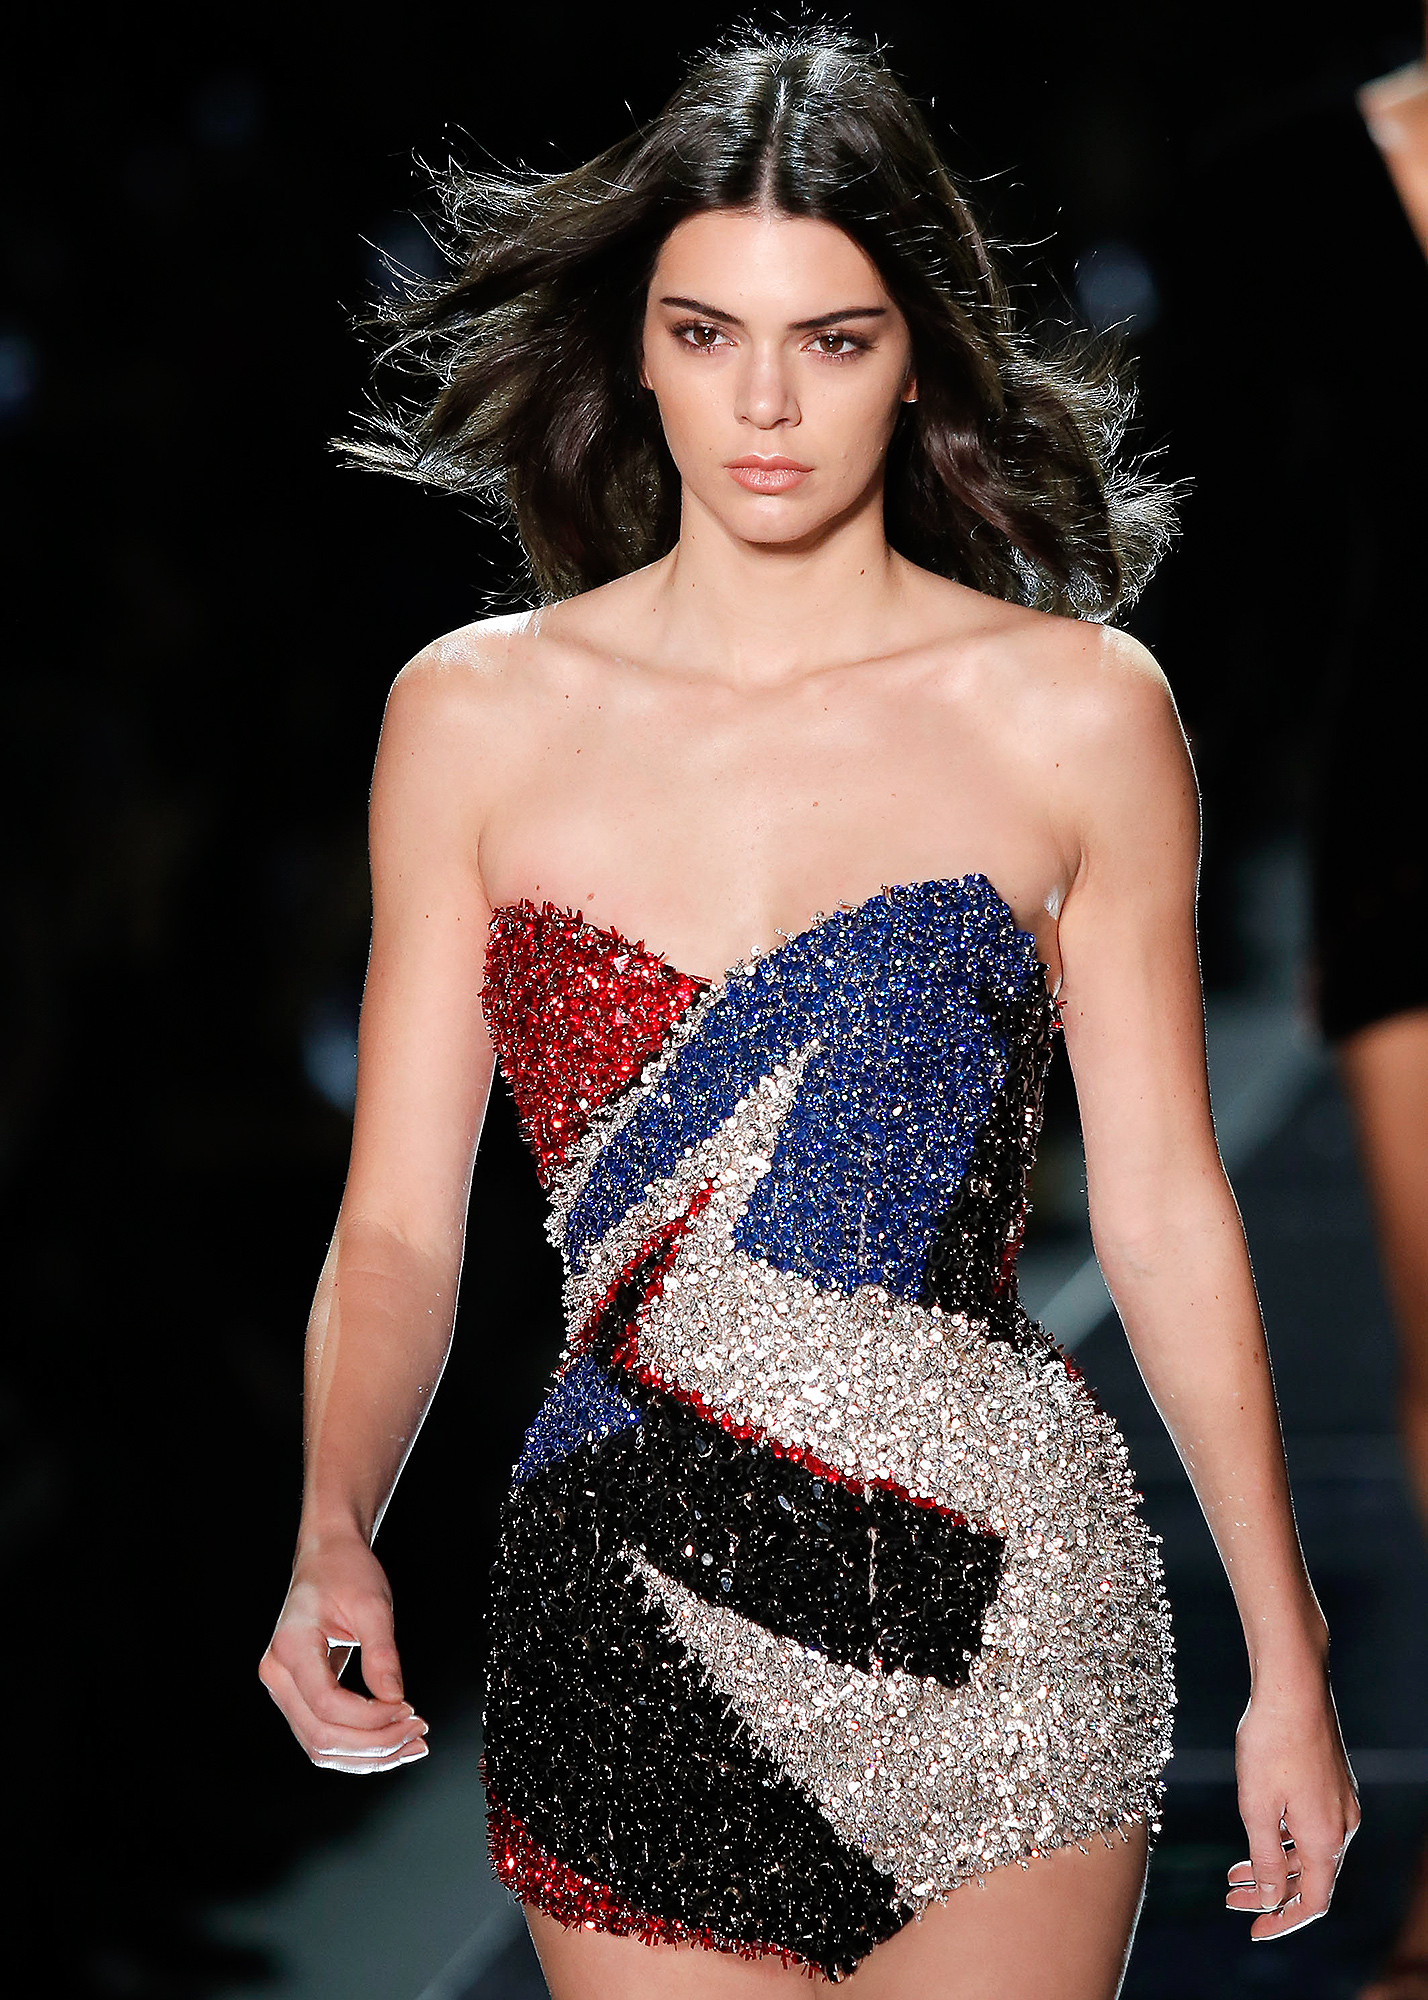 Bella Hadid and Kendall Jenner walk the catwalk at the Alexandre Vauthier Fashion show, Paris Fashion Week.